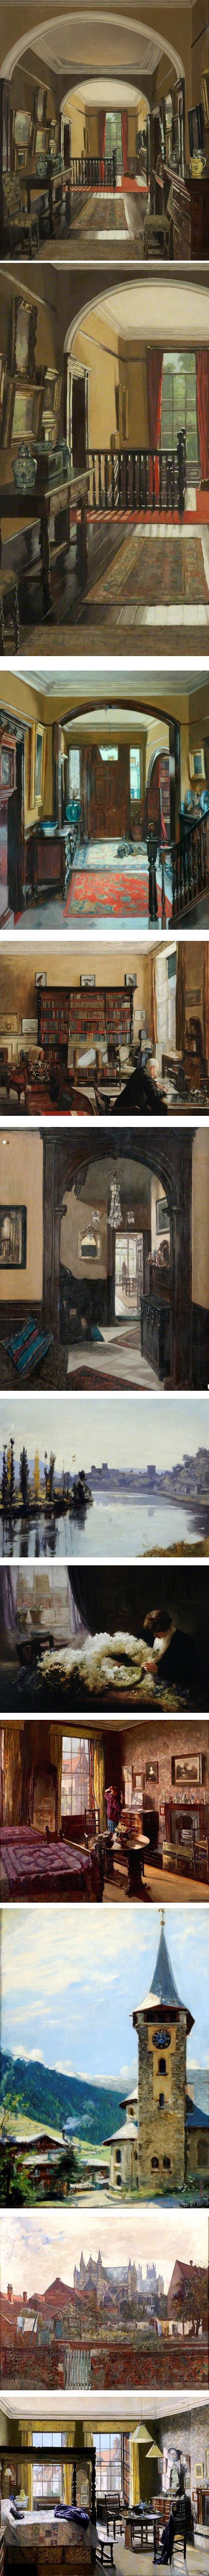 Mary Dawson Elwell, Britiah painter active late 19th early 20th century